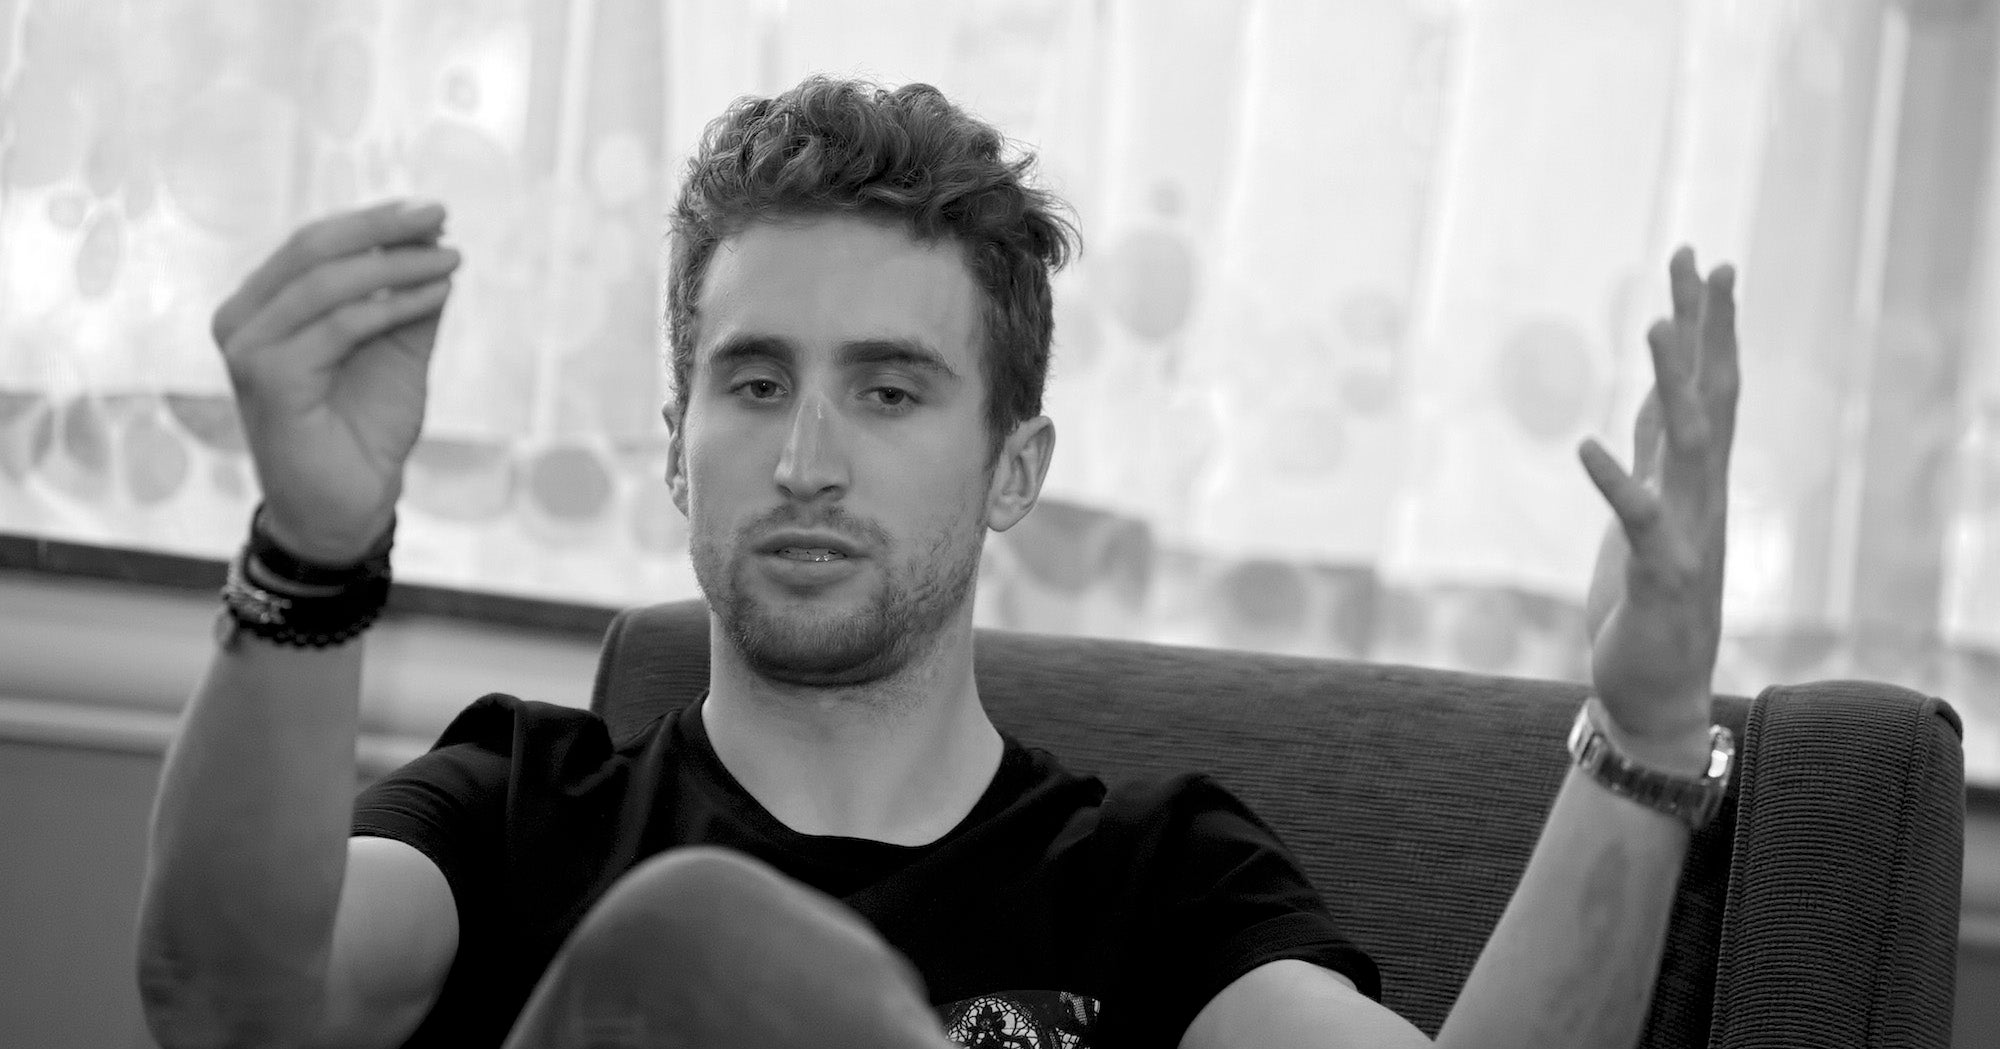 Taylor-Phinney-interview-leg-injury